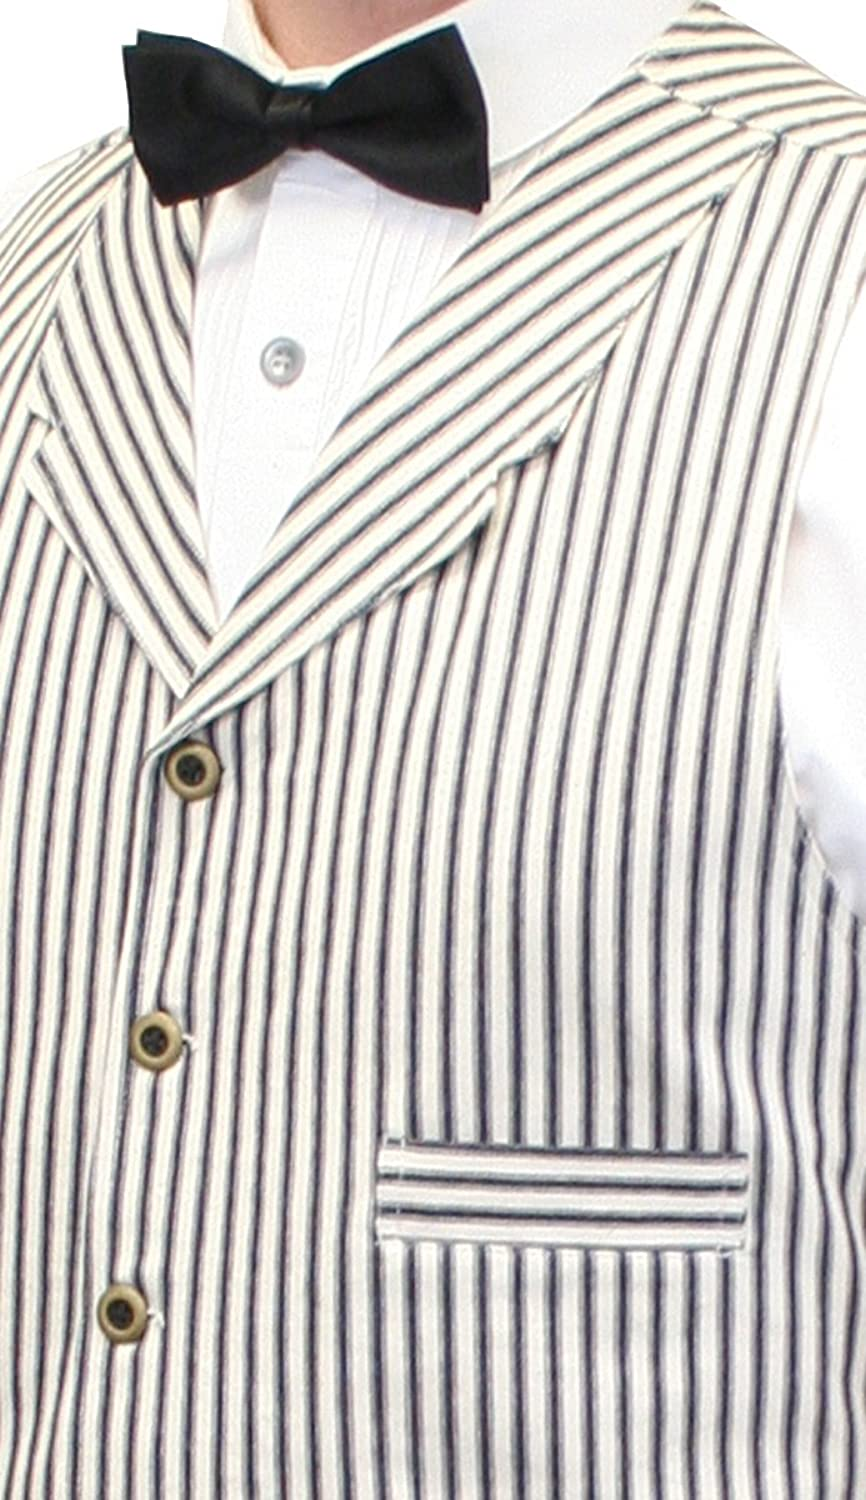 Men's Vintage Christmas Gift Ideas Historical Emporium Mens Summerhill Cotton Striped Dress Vest $59.95 AT vintagedancer.com